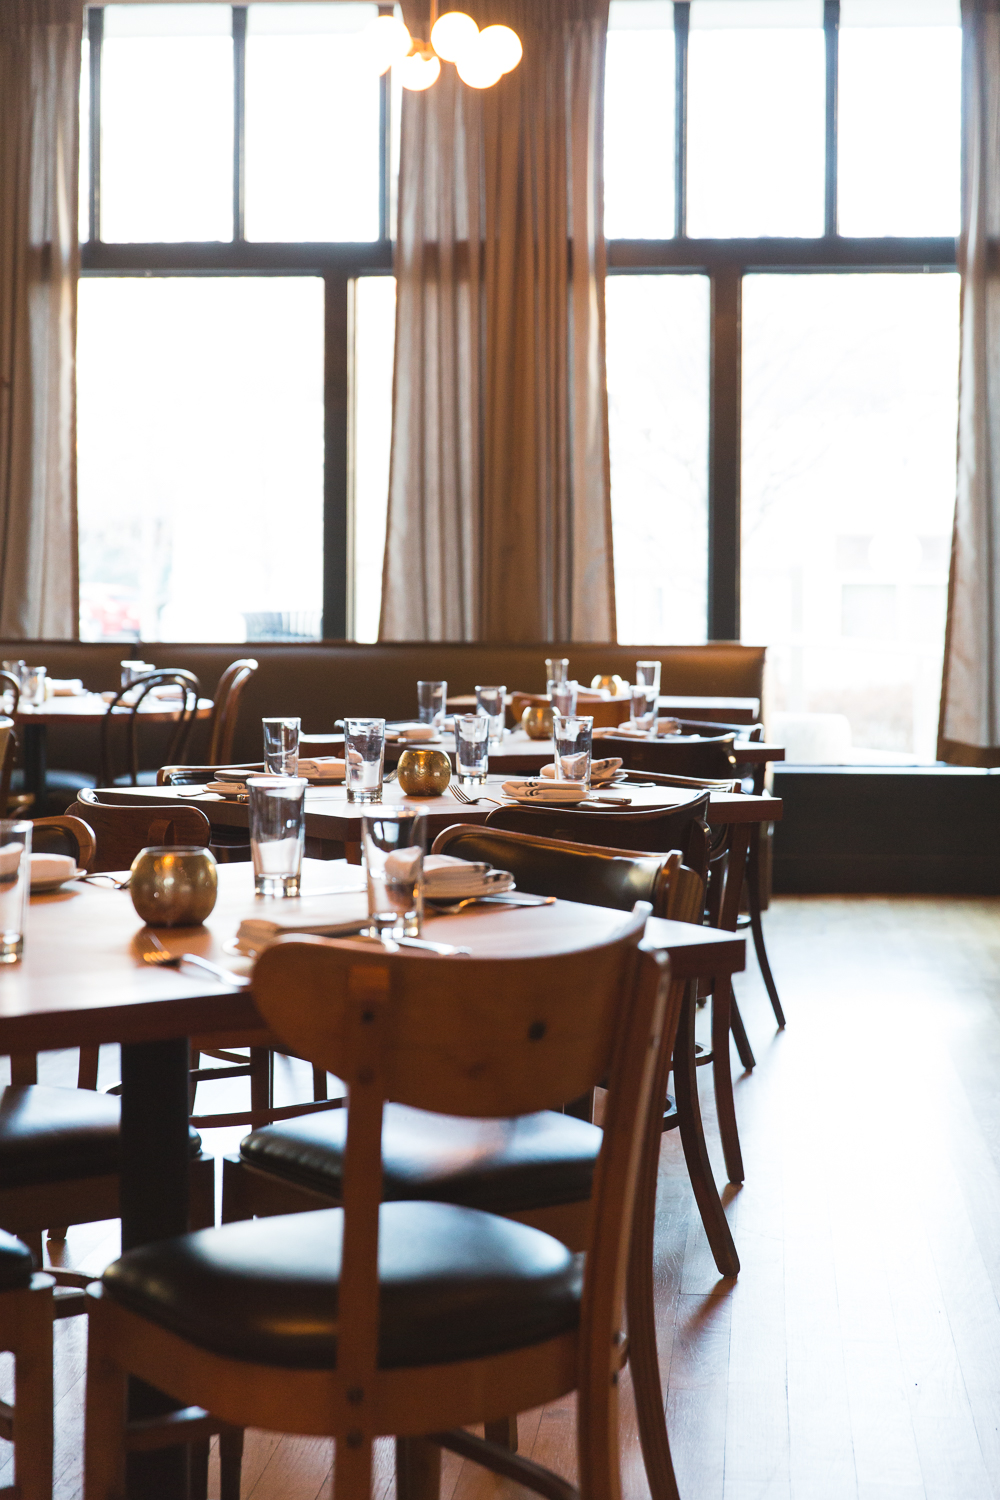 "Your private event or party can be held at Cakes & Ale in one of two beautiful spaces.  From business dinners to bridal showers, we love hosting luncheons and dinner parties for up to 40 people in the main dining room and 15 in our cafe for any type of gathering or event. For information or to book your private event, contact events@cakesandalerestaurant.com. Here's what some of our guests have to say about hosting their private event at Cakes & Ale: ""Please accept my sincere thanks for a wonderful luncheon.  Everything was absolutely perfect, and our staff loved it."" ""We were charmed by absolutely every aspect of the evening. My colleagues in this group are well-traveled and have experienced places such as Chez Panisse, Per Se, etc. I wanted to give them a unique experience with great food and drink without too much fuss. This was perfect!""  ""I just wanted to tell you how amazing the rehearsal dinner was on Friday. I couldn't have chosen a more perfect place.  The layout of the restaurant and bar was ideal for our event as we could finish dinner and then join guests in the bar.  I could not have been more pleased."""